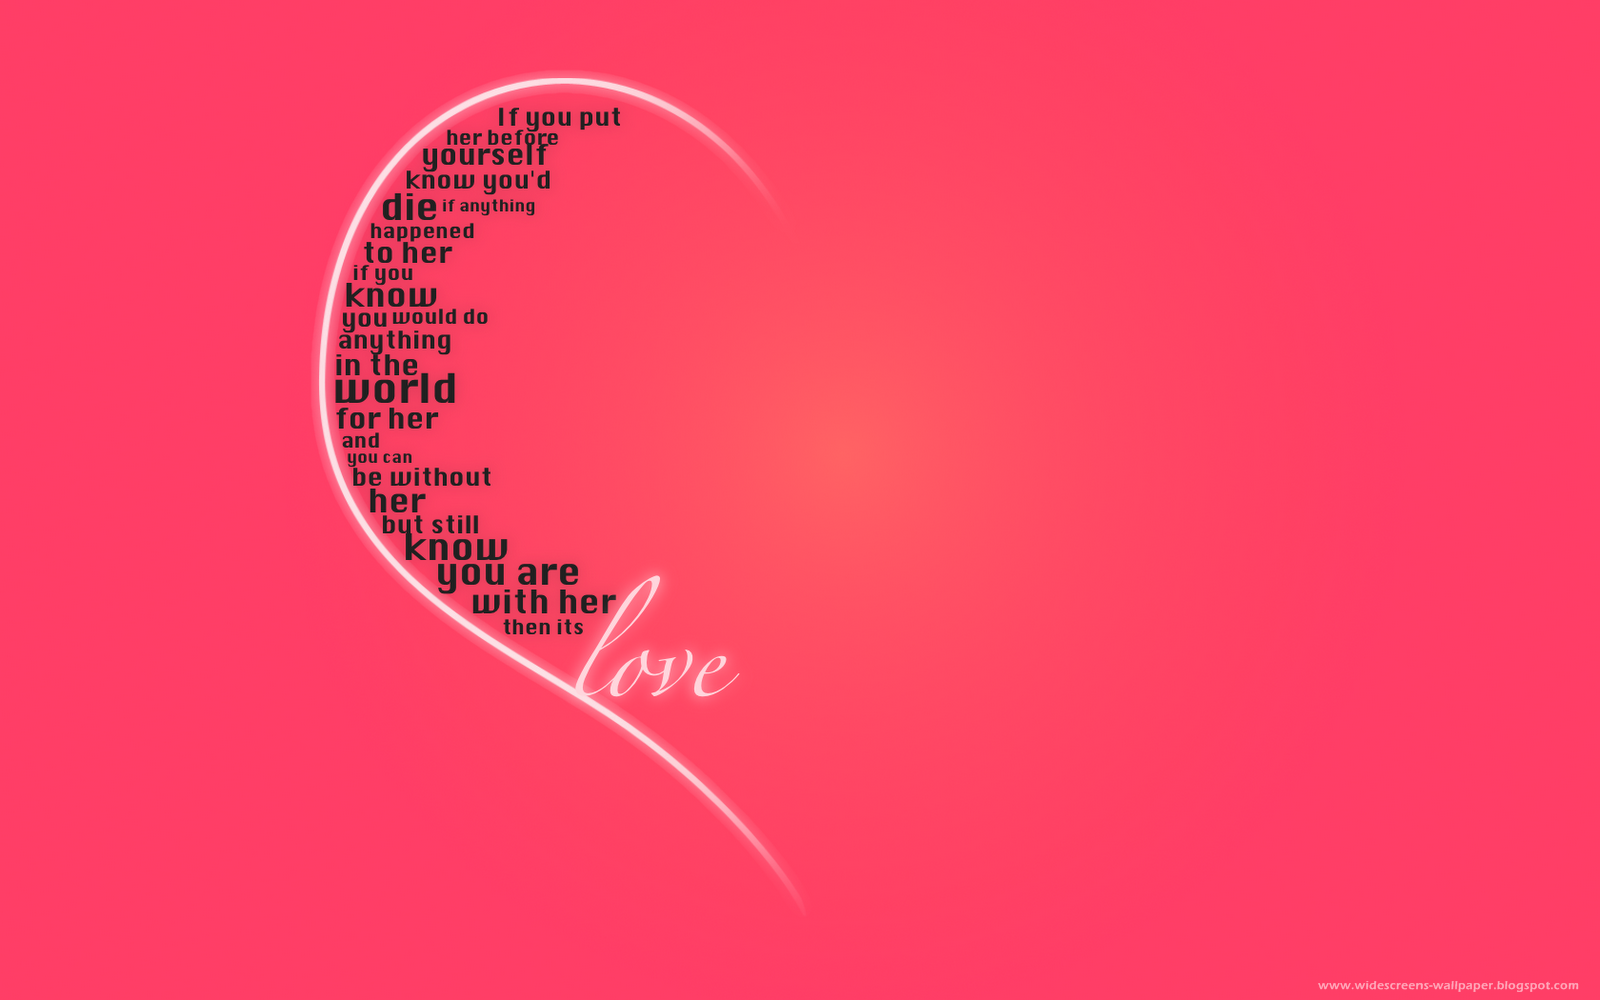 True Love Desktop Wallpaper : Wallpaper collection For Your computer and Mobile Phones: New Romantic Love Words And Quotations ...